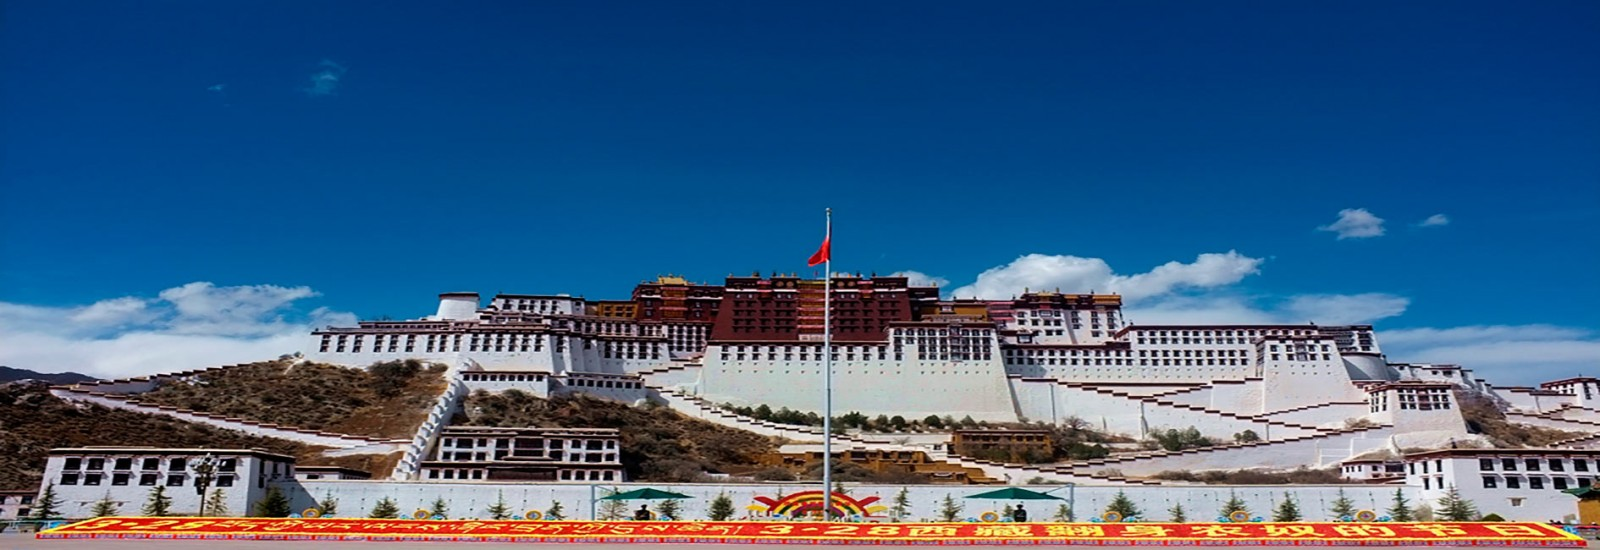 1 day Lhasa must see tour site-Potala Palace, Jokhang Temple, Barkhor streets